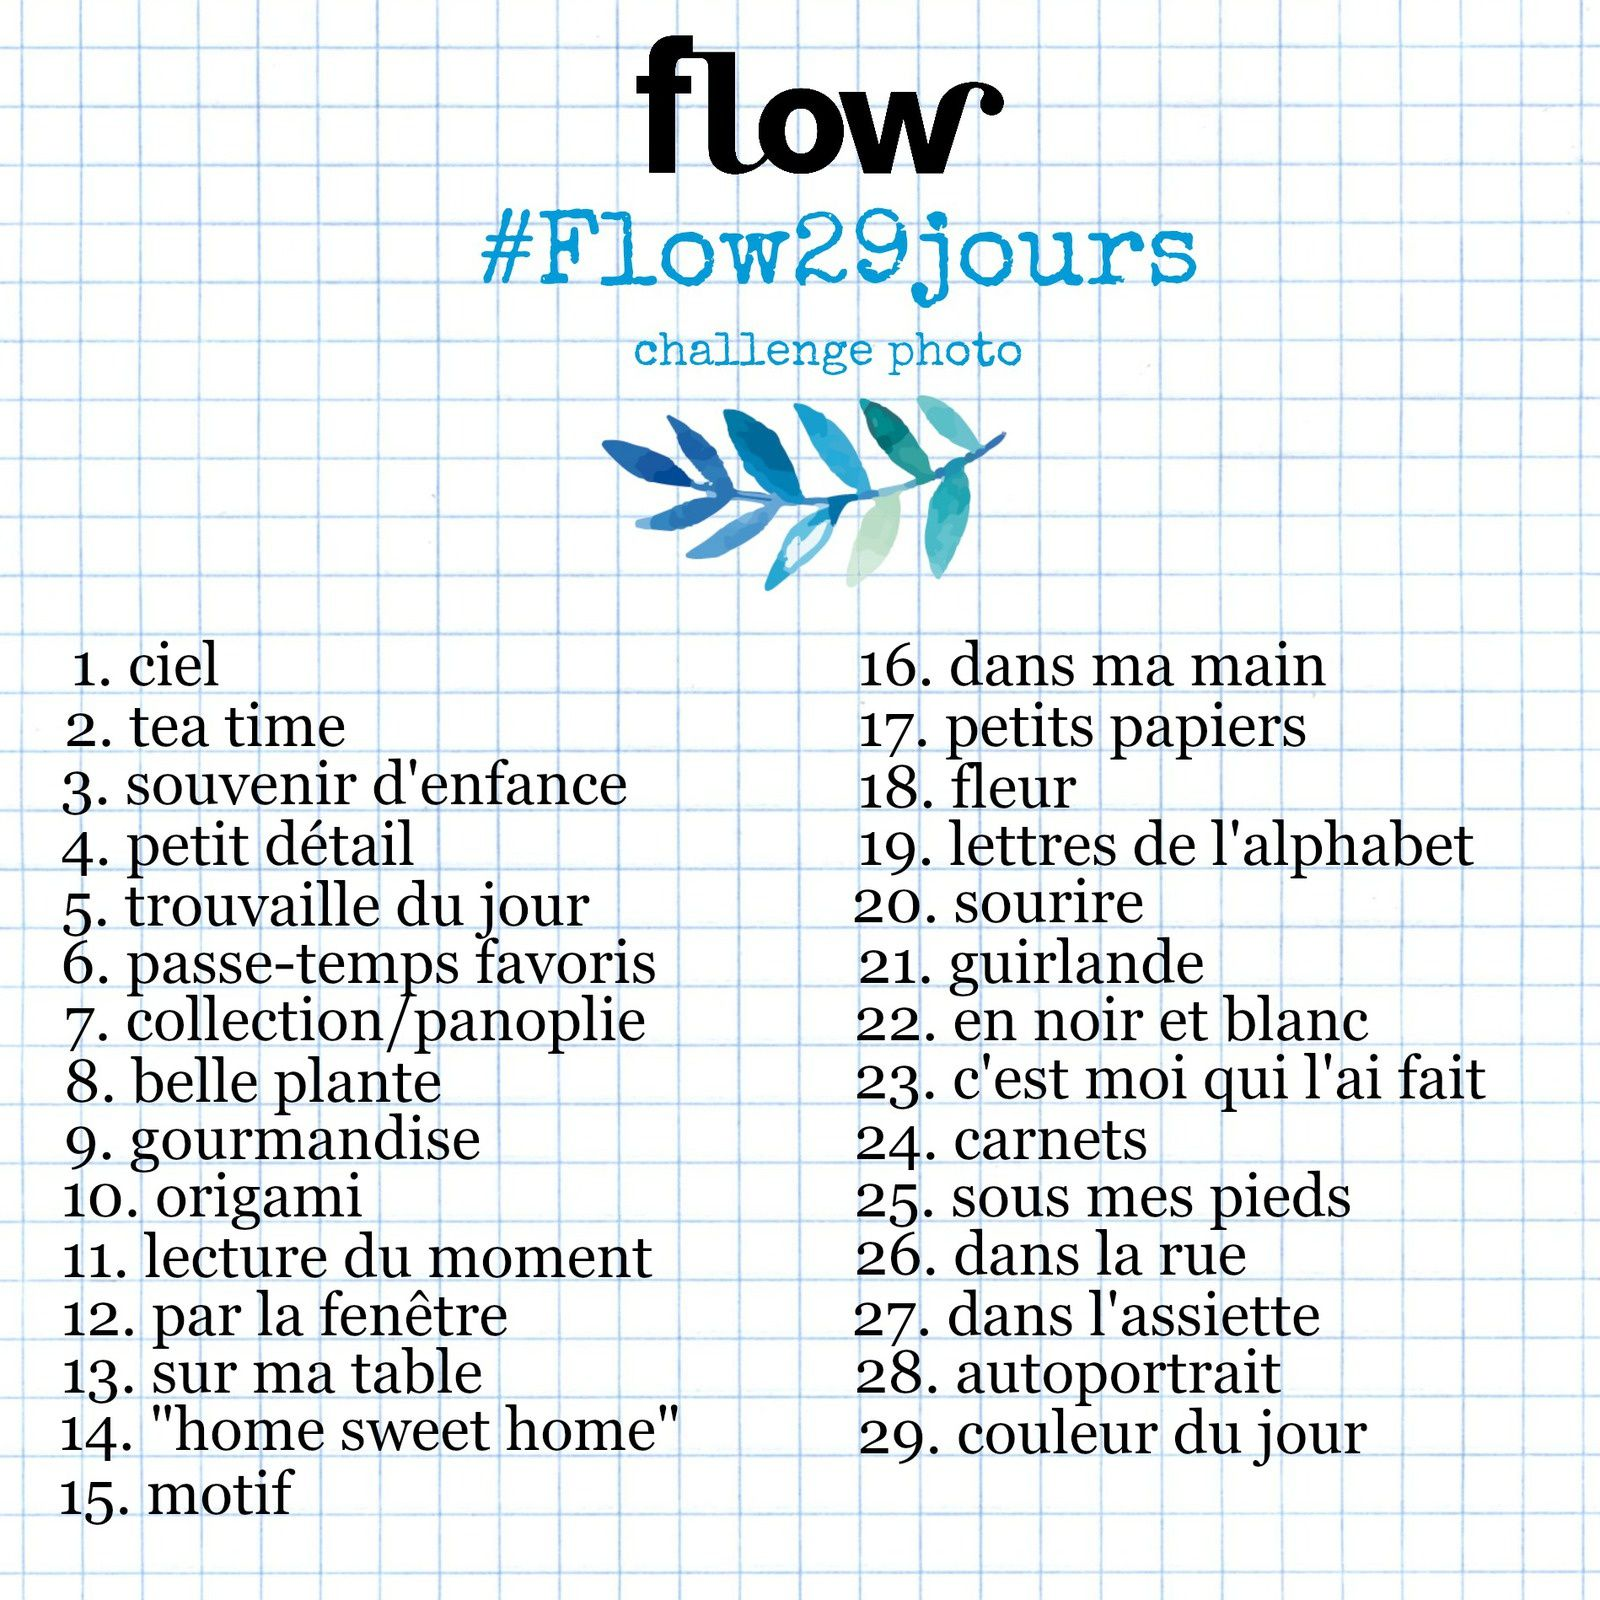 #Flow29jours  7.collection panoplie